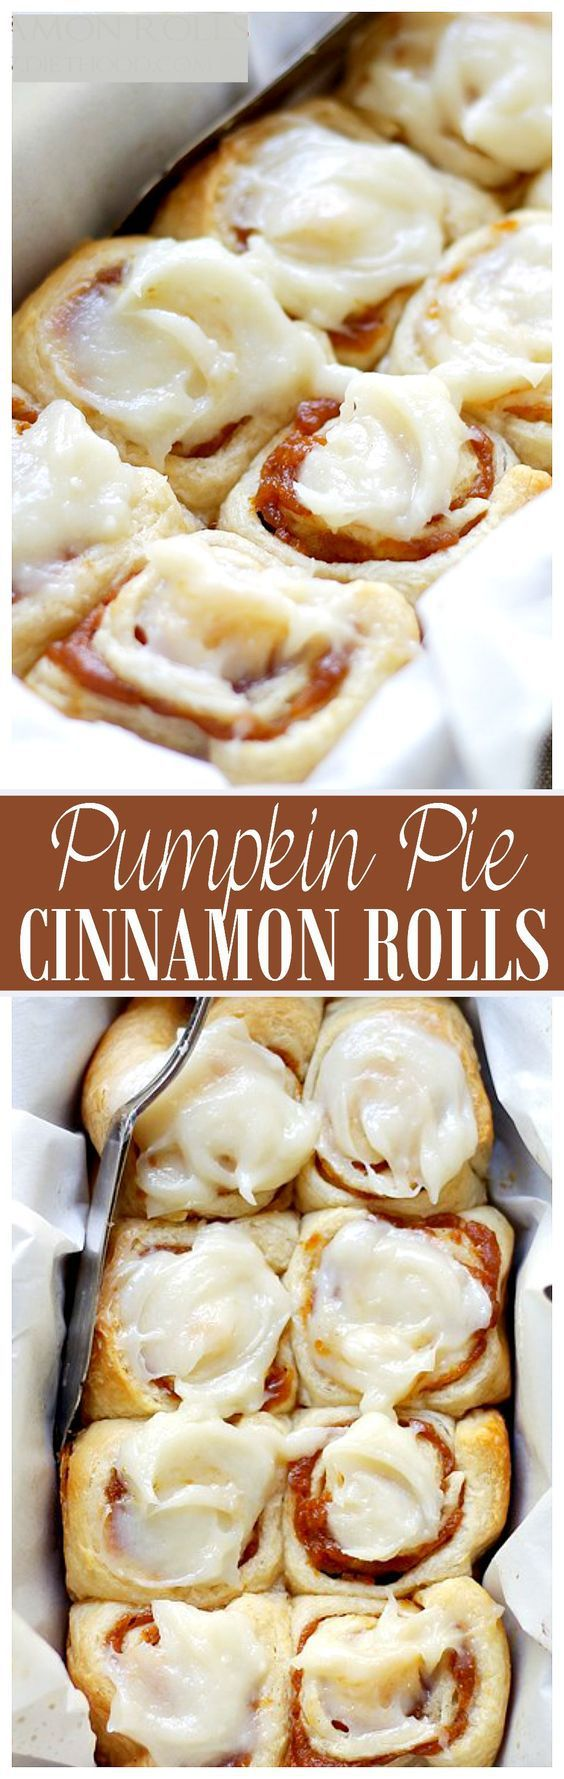 30 Minute Pumpkin Pie Cinnamon Rolls Recipe | Diethood - The BEST Cinnamon Rolls Recipes - Perfect Treats for Breakfast, Brunch, Desserts, Christmas Morning, Special Occasions and Holidays